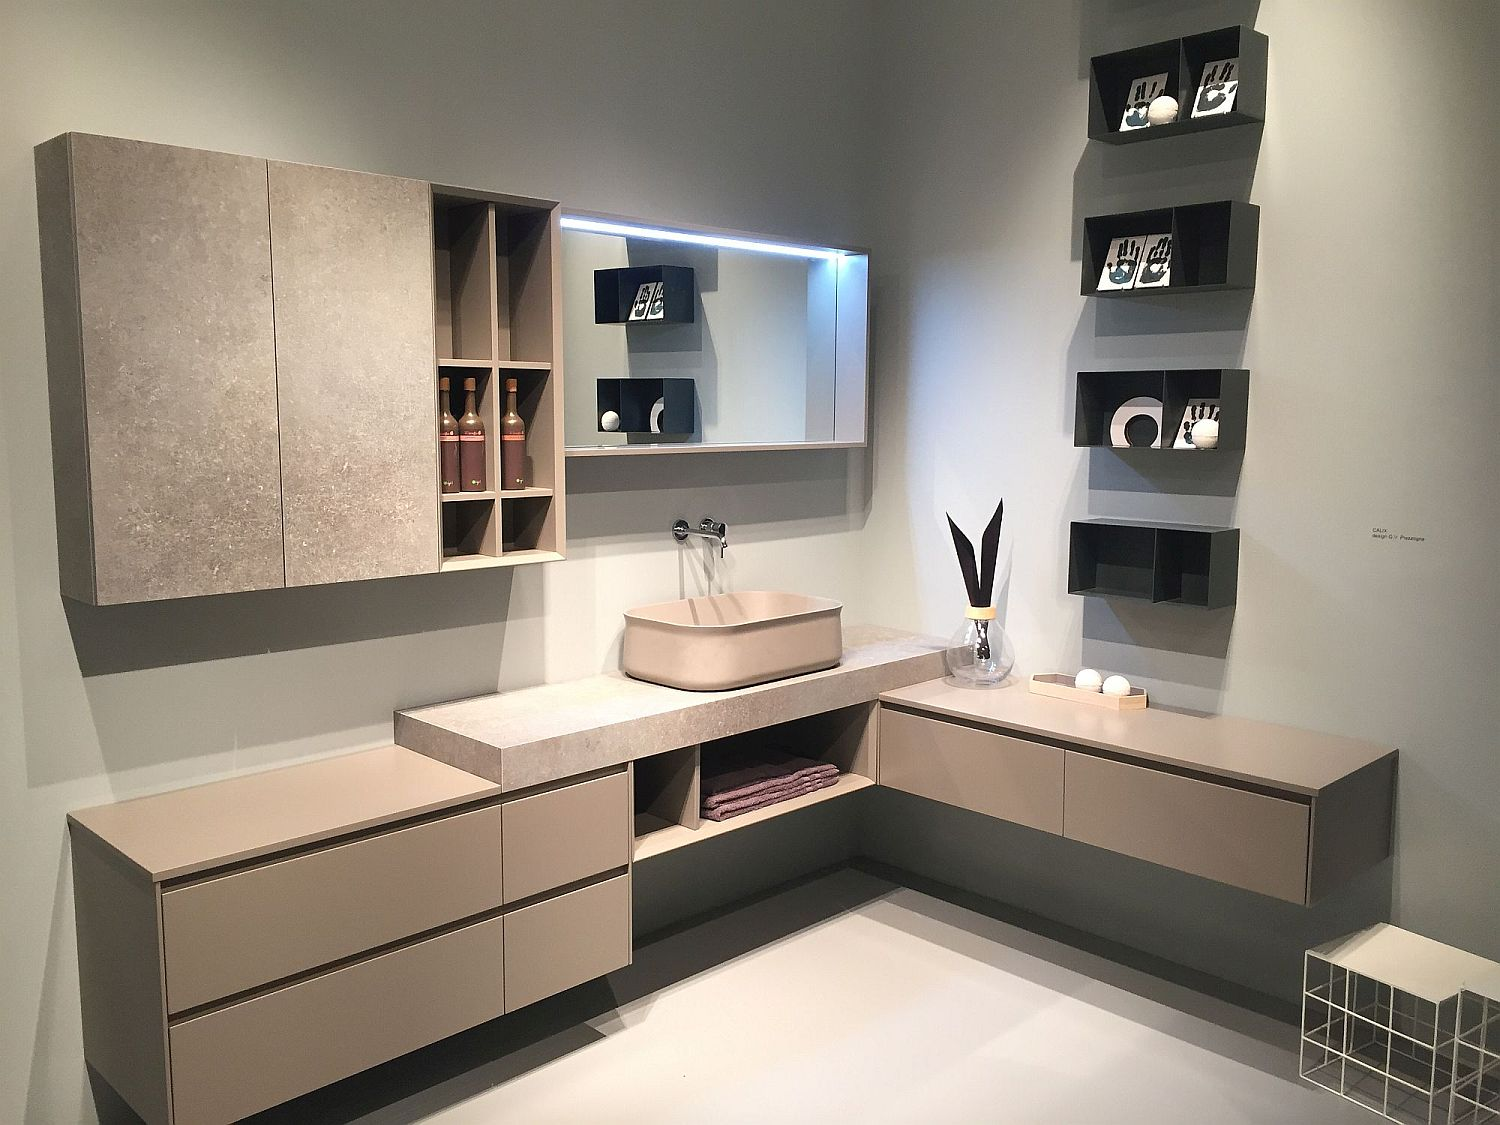 Vanity Contemporary Bathroom Cabinets Exquisite Contemporary Bathroom Vanities with Space-Savvy Style